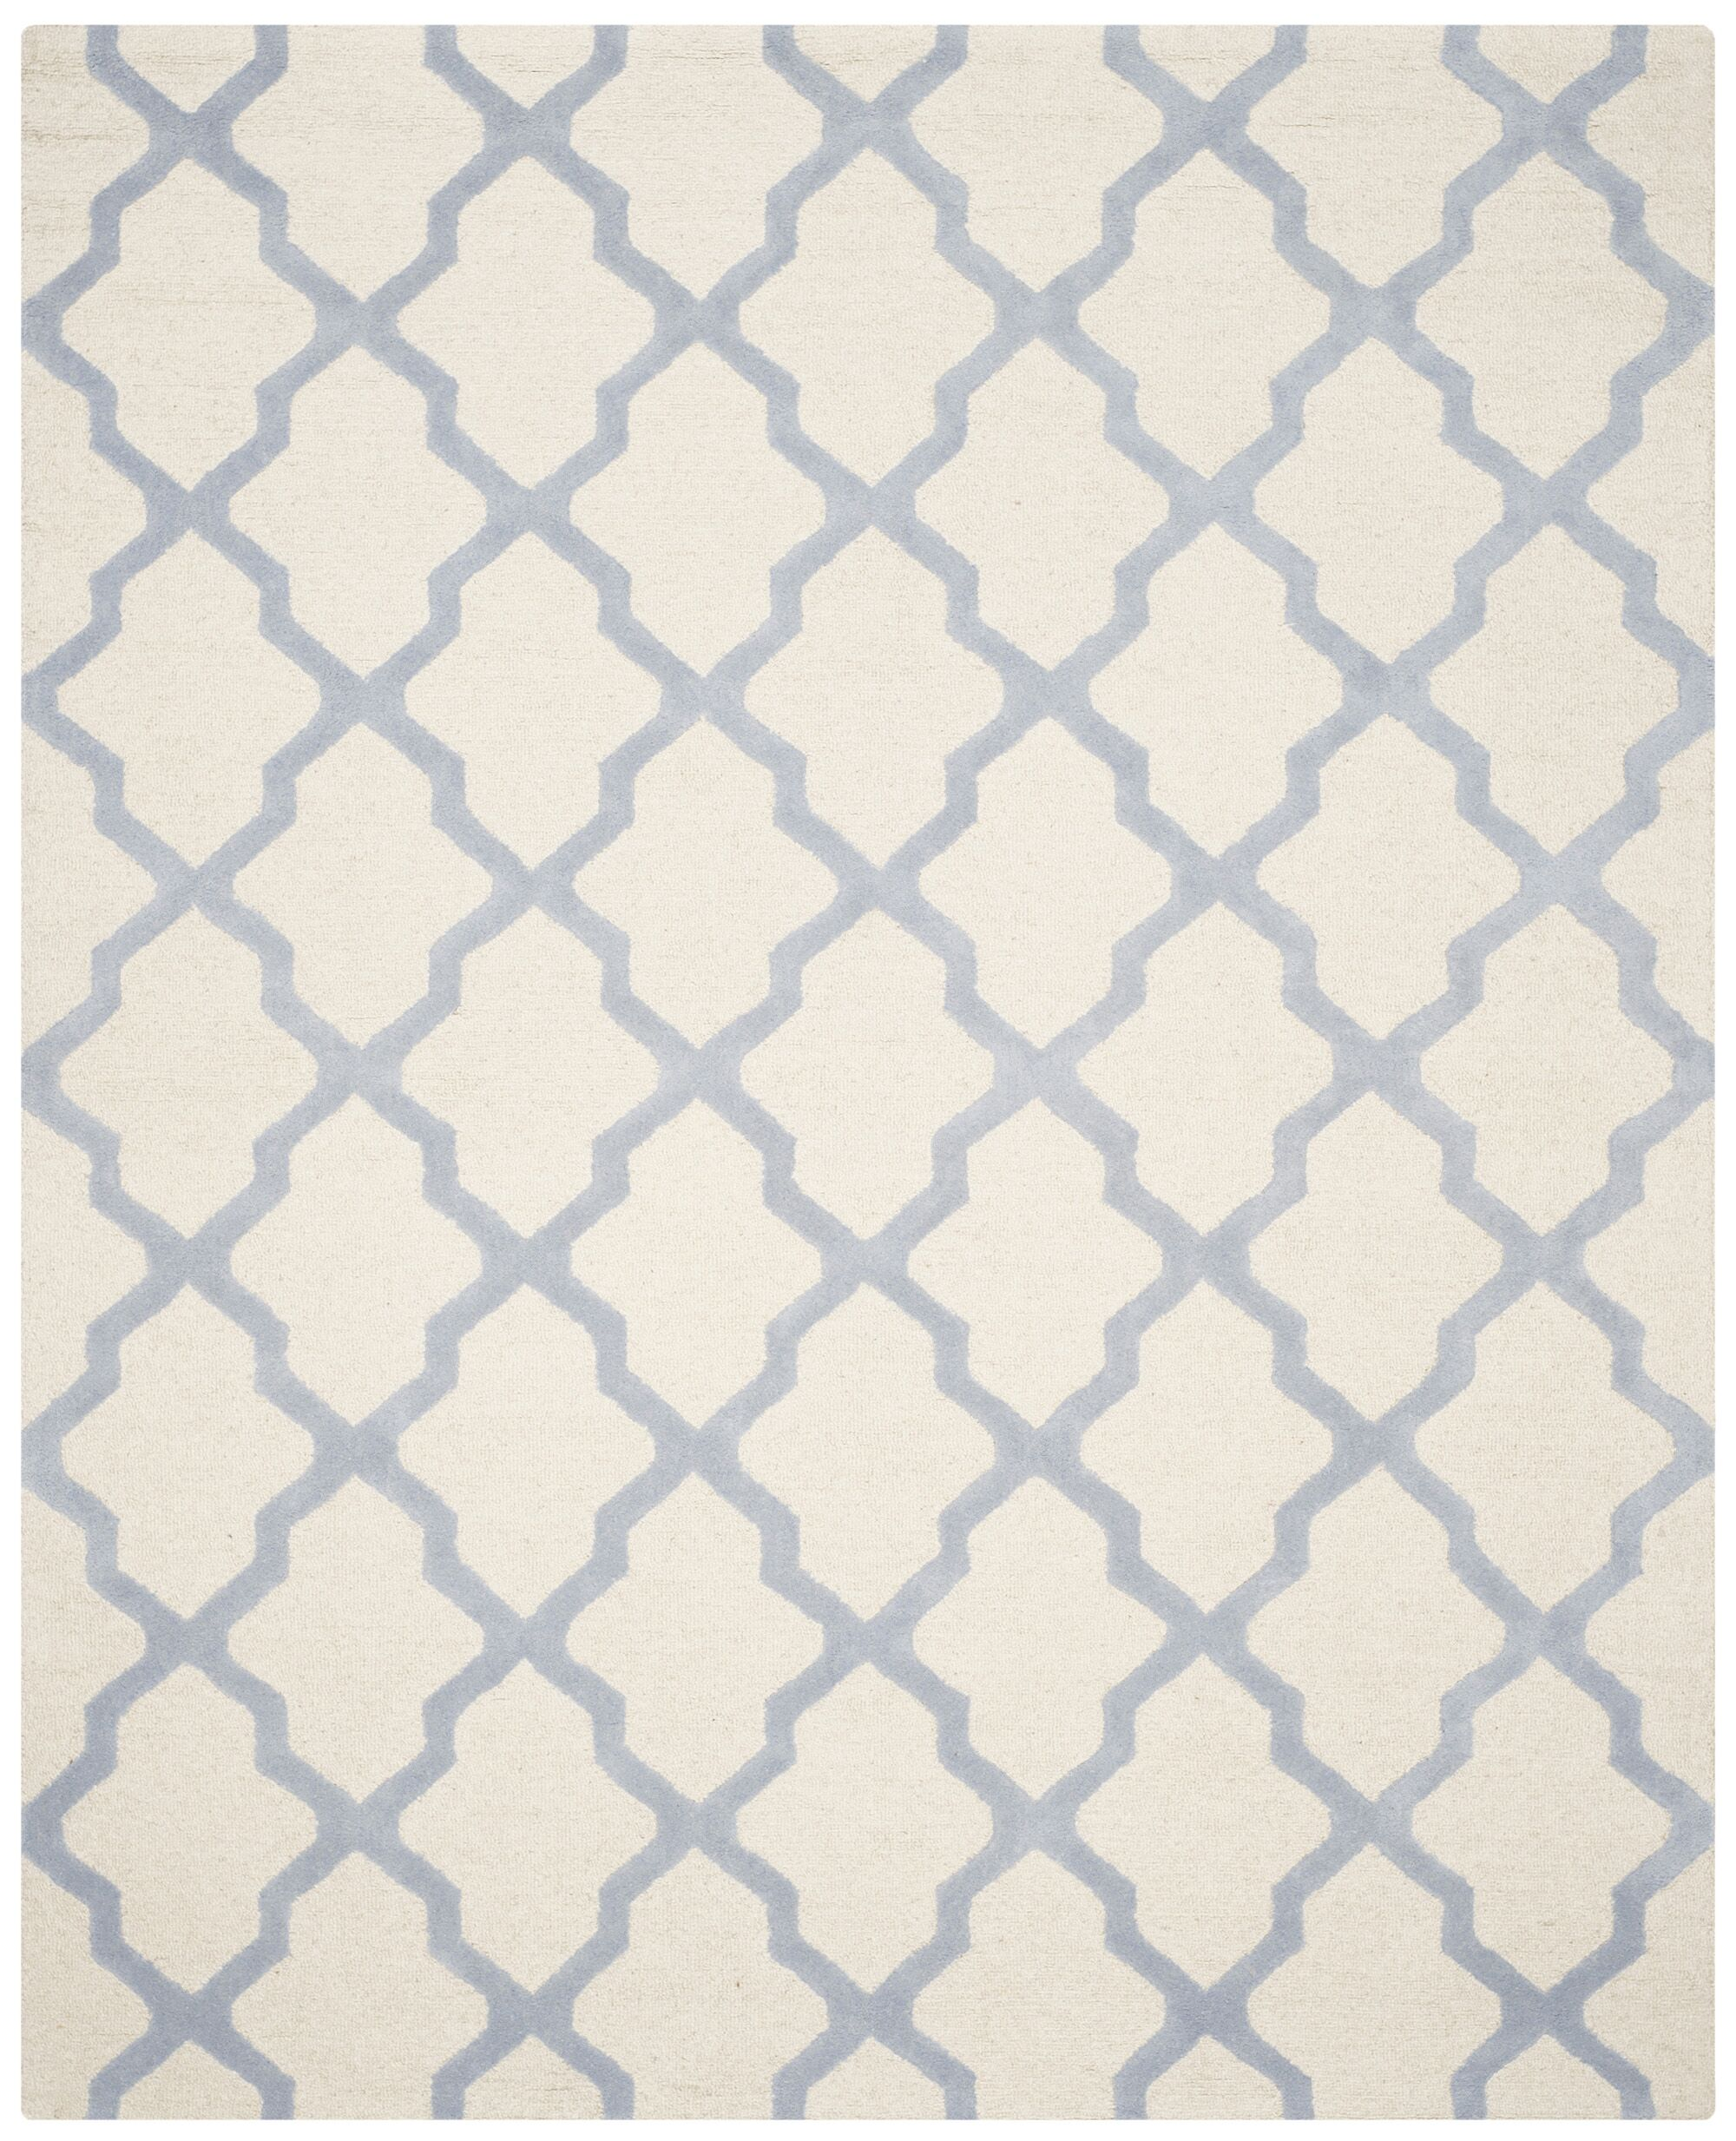 Charlenne Hand-Tufted Ivory/Gray Area Rug Rug Size: Rectangle 8' x 10'